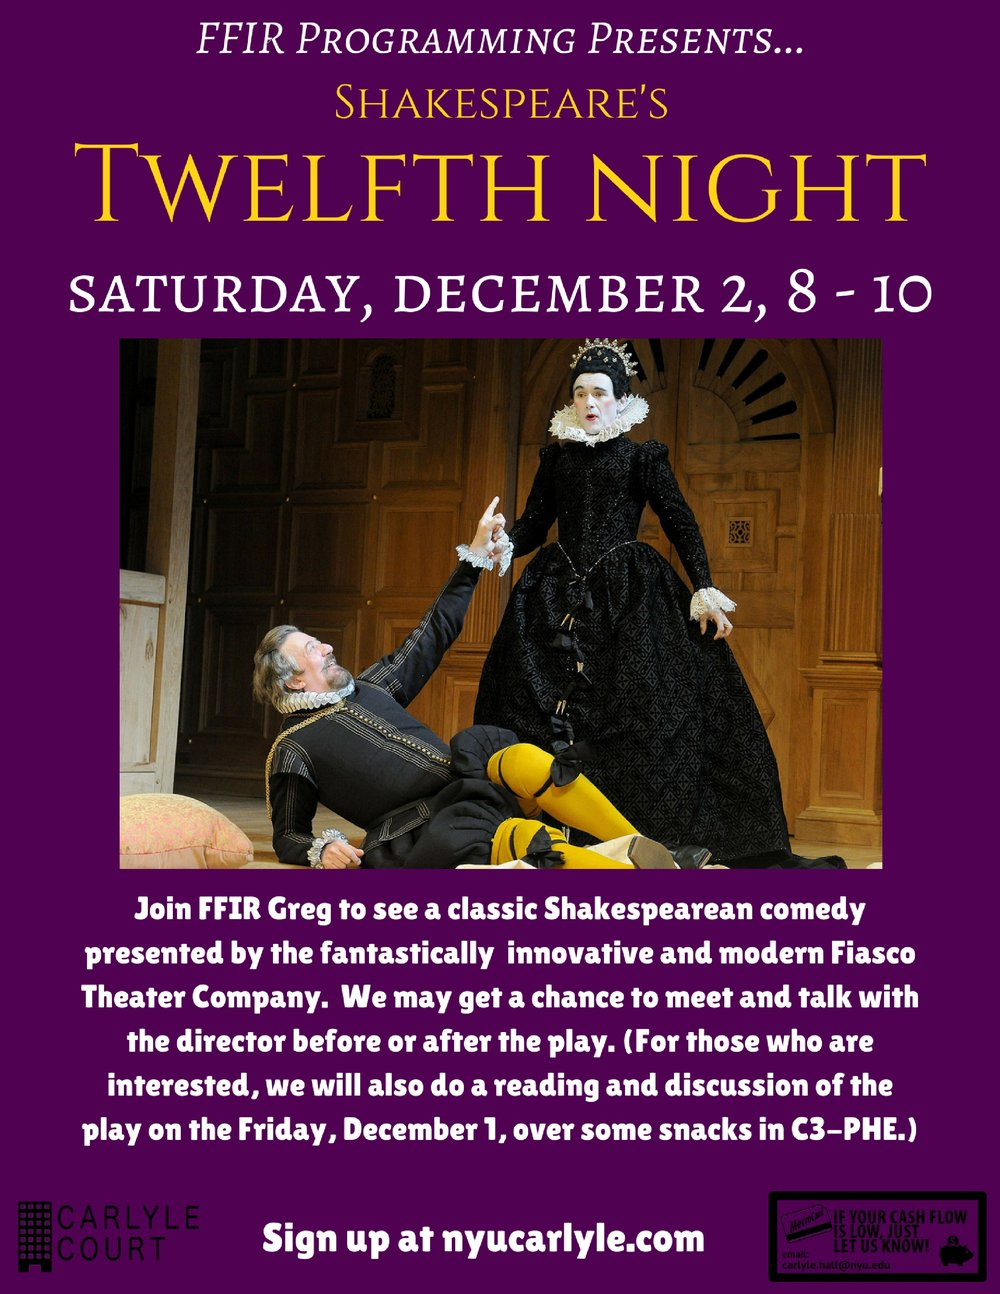 shakespeares twelfth night essay Shakespeares twelfth night is a play overflowing with ambiguity in terms of tone, character portrayal, dialogue and meaning which gives directors.